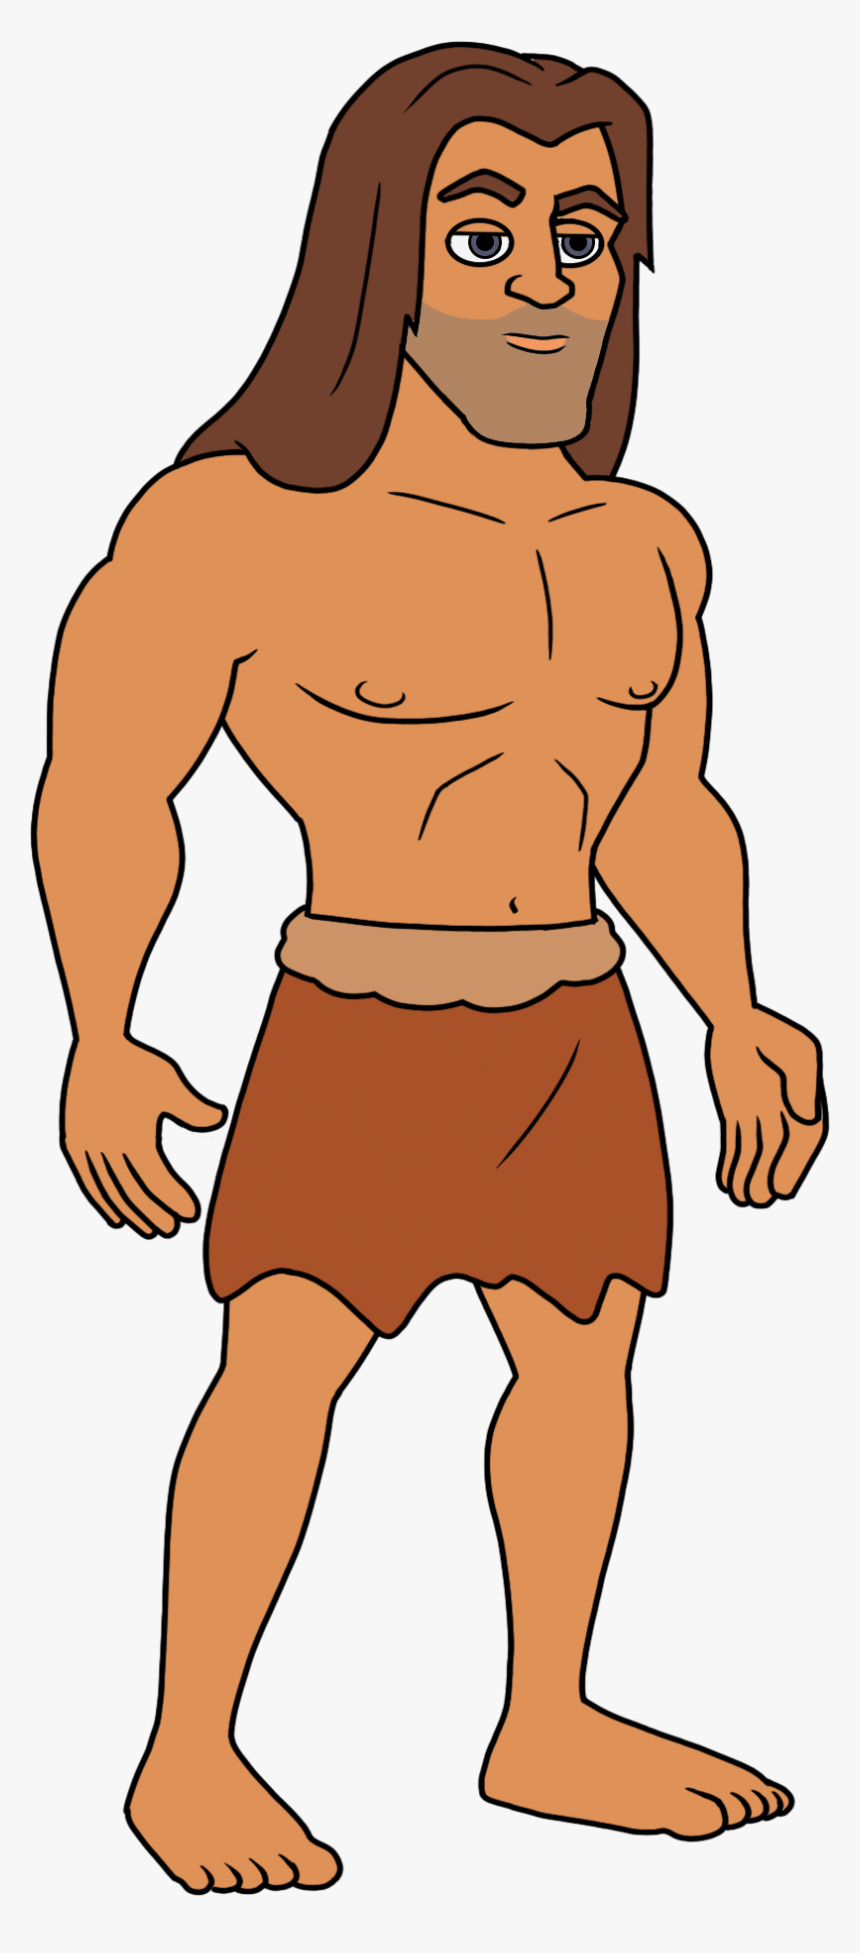 Human Discoveries Wiki - Cartoon, HD Png Download, Free Download